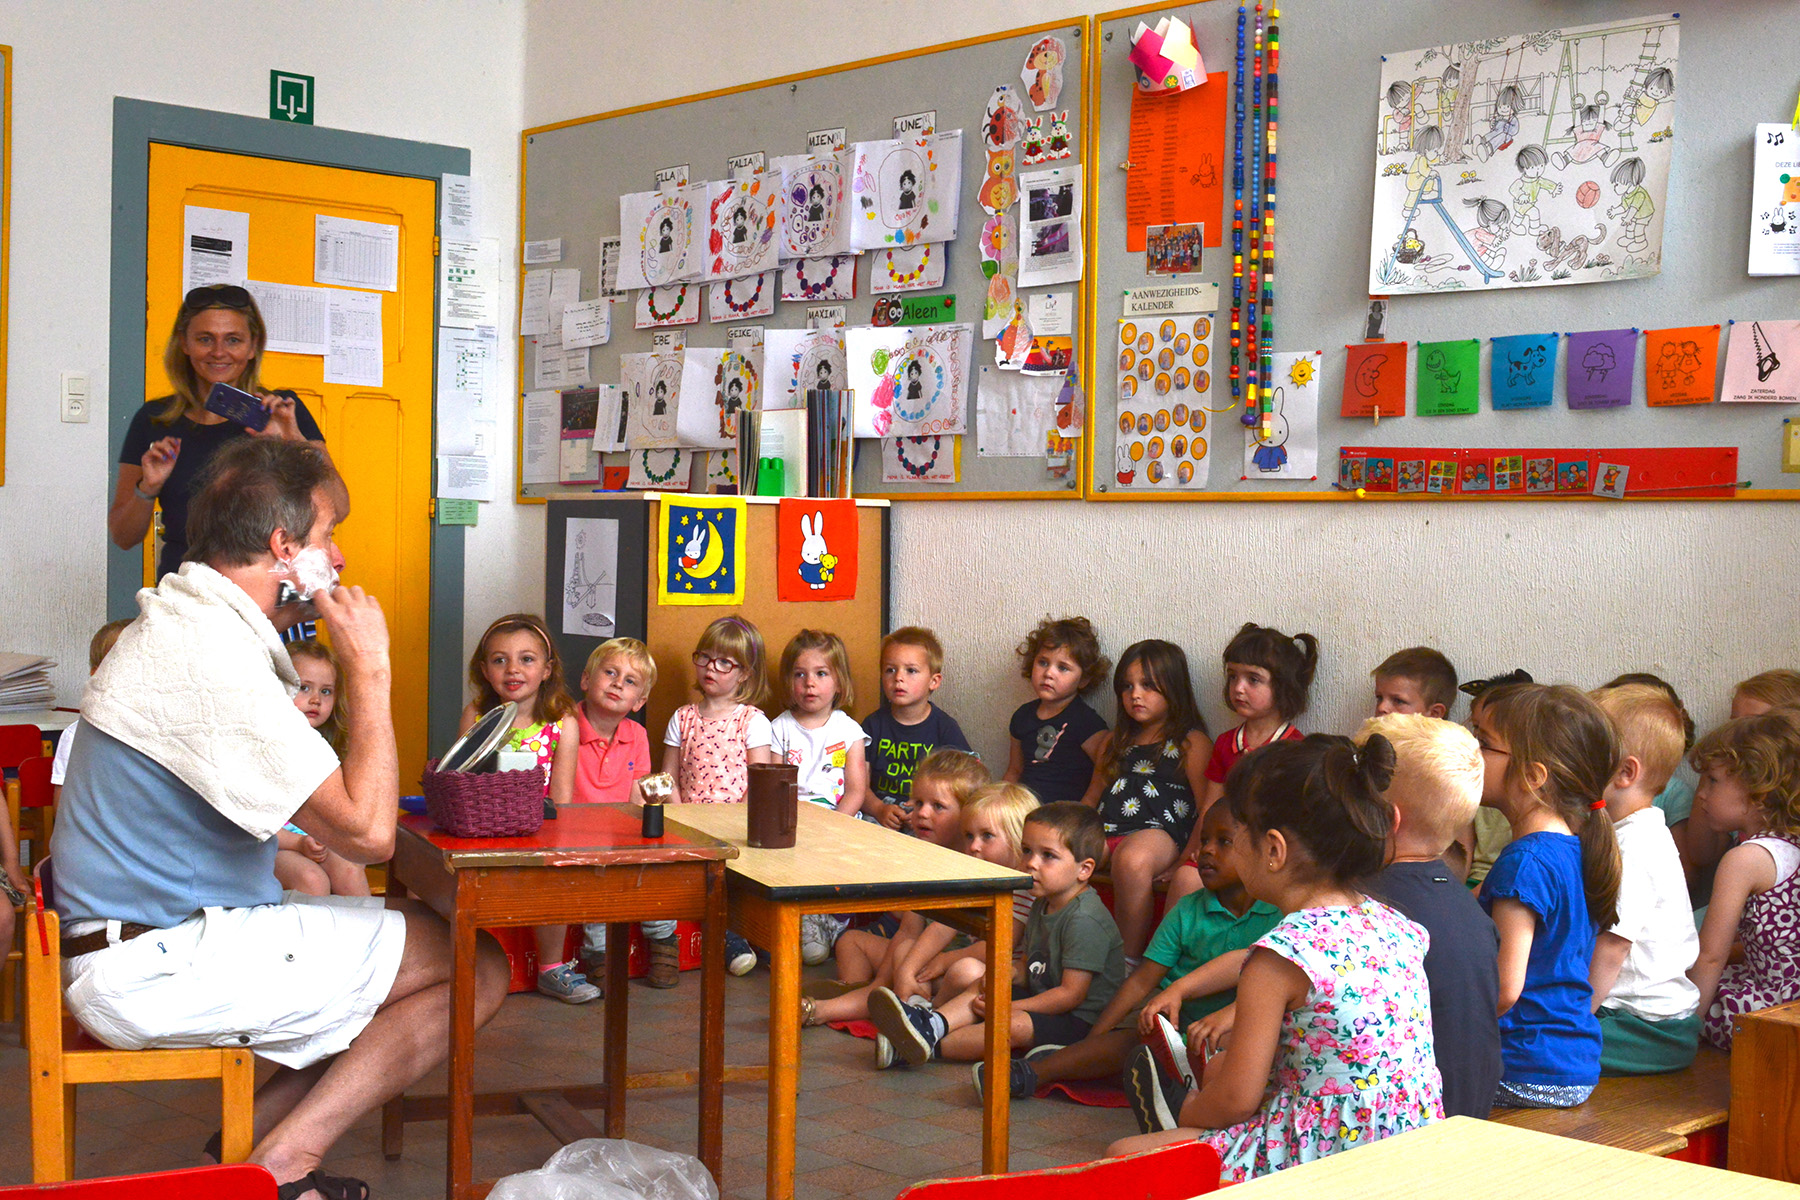 Students in a classroom in Belgium